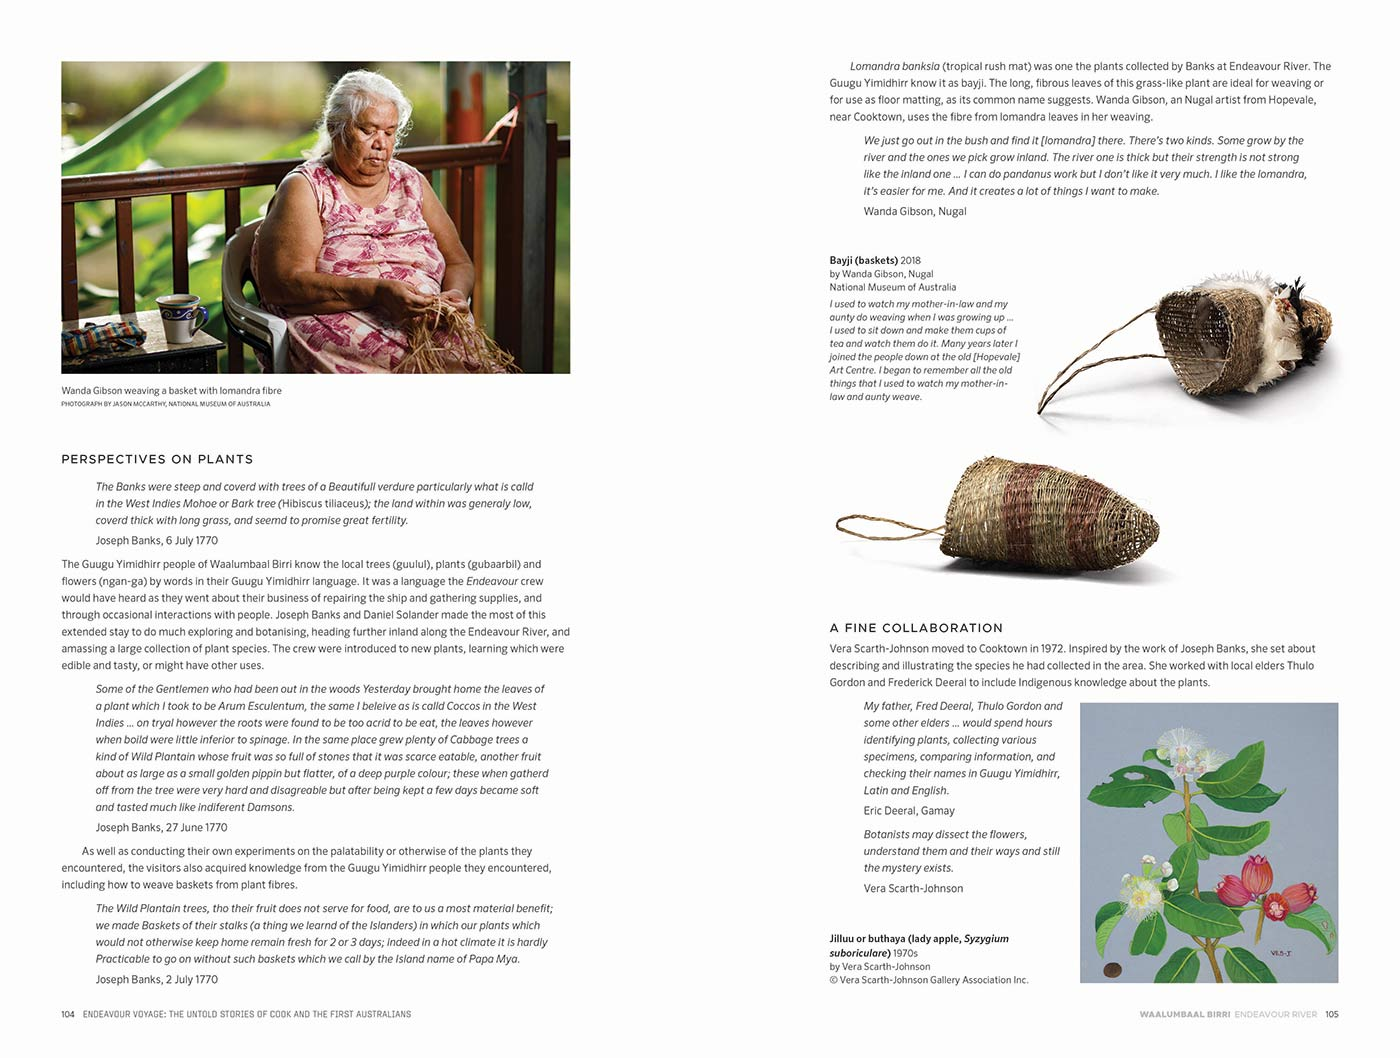 Sample page for the Endeavour Voyages: The Untold Stories of Cook and the First Australians catalogue. The page features body text, and images including a woman weaving a basket, handmade baskets and an illustration of a flowering plant species. - click to view larger image